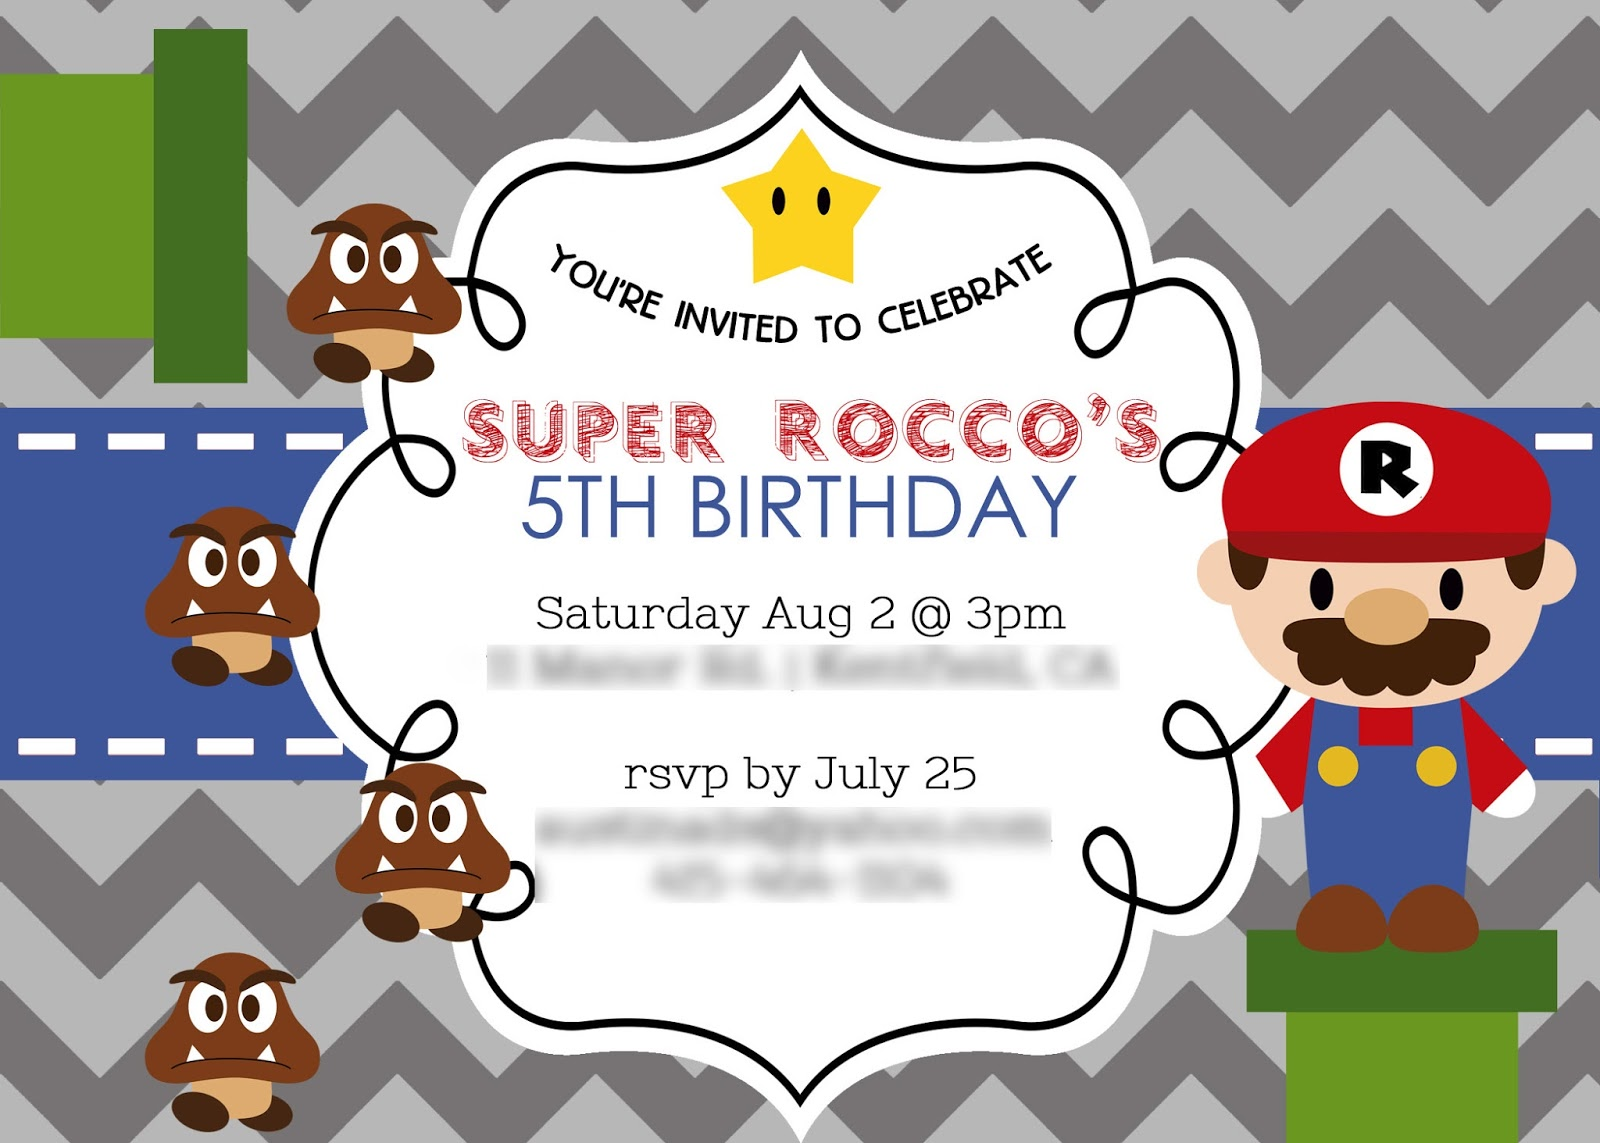 Sugar mama cookies roccos 5th birthday a super mario party roccos 5th birthday a super mario party monicamarmolfo Gallery